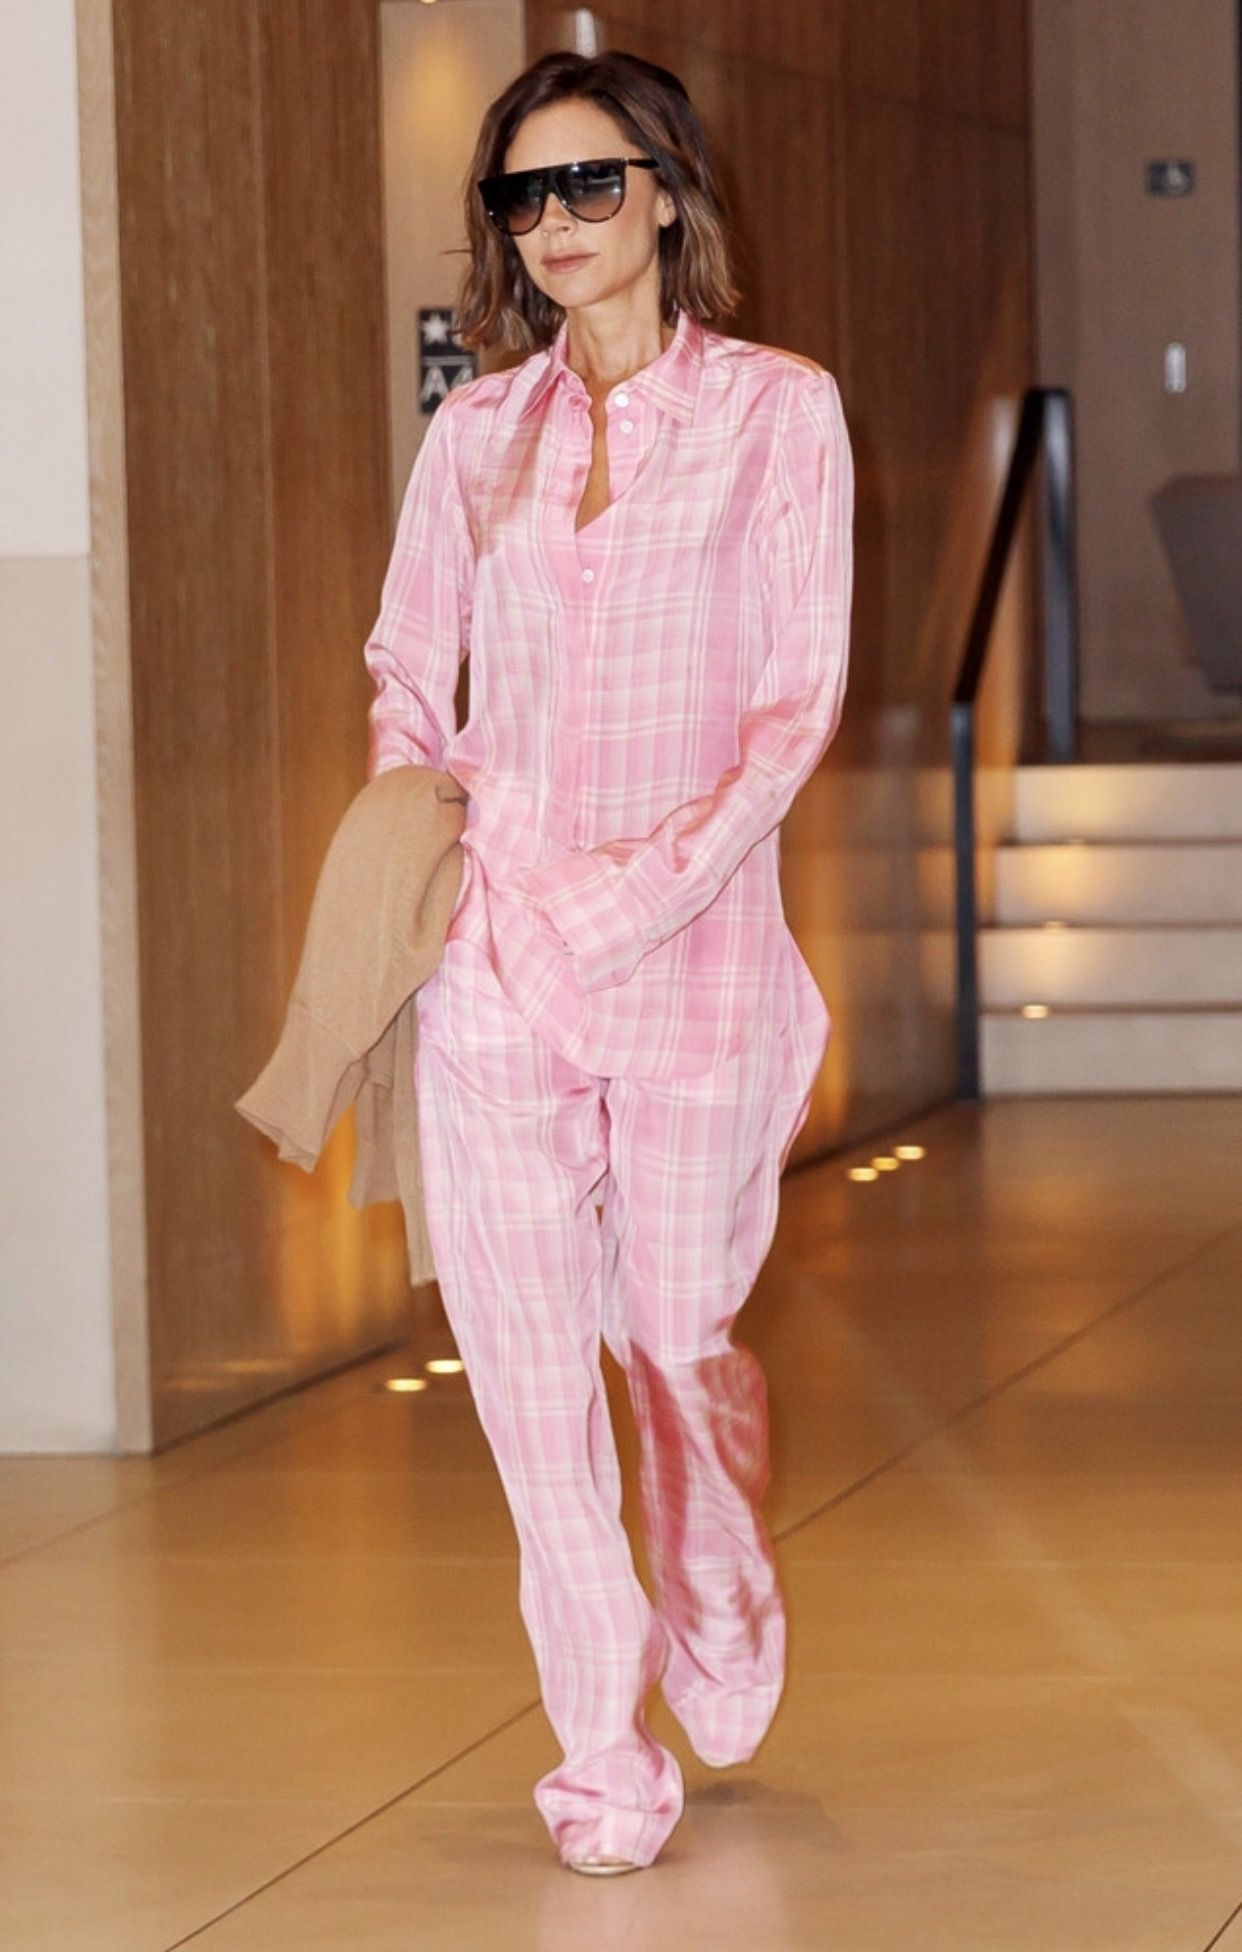 Pin by SOPHIA on VICTORIA BECKHAM | Pinterest | Victoria beckham and ...